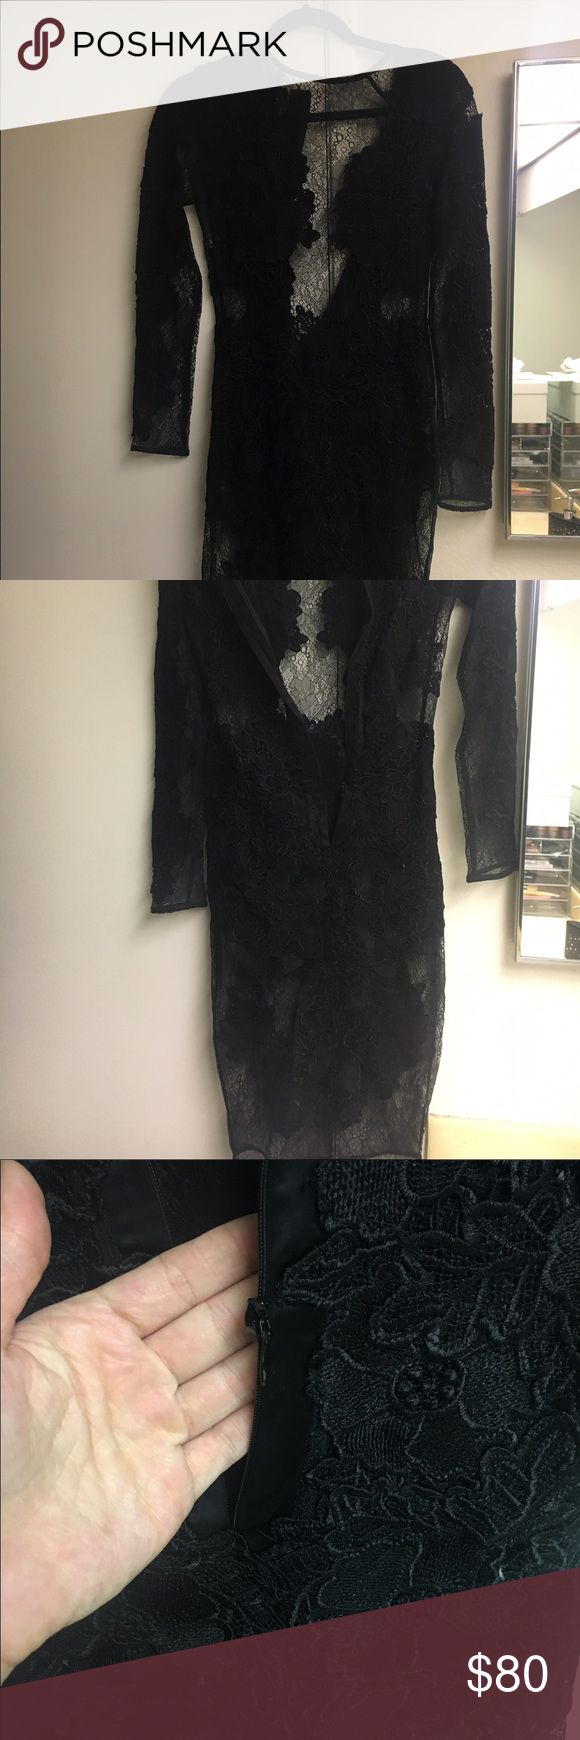 House of Cb Nolita Lace Dress In excellent condition zipper is broken no tears or rips Size small house of cb Dresses Midi